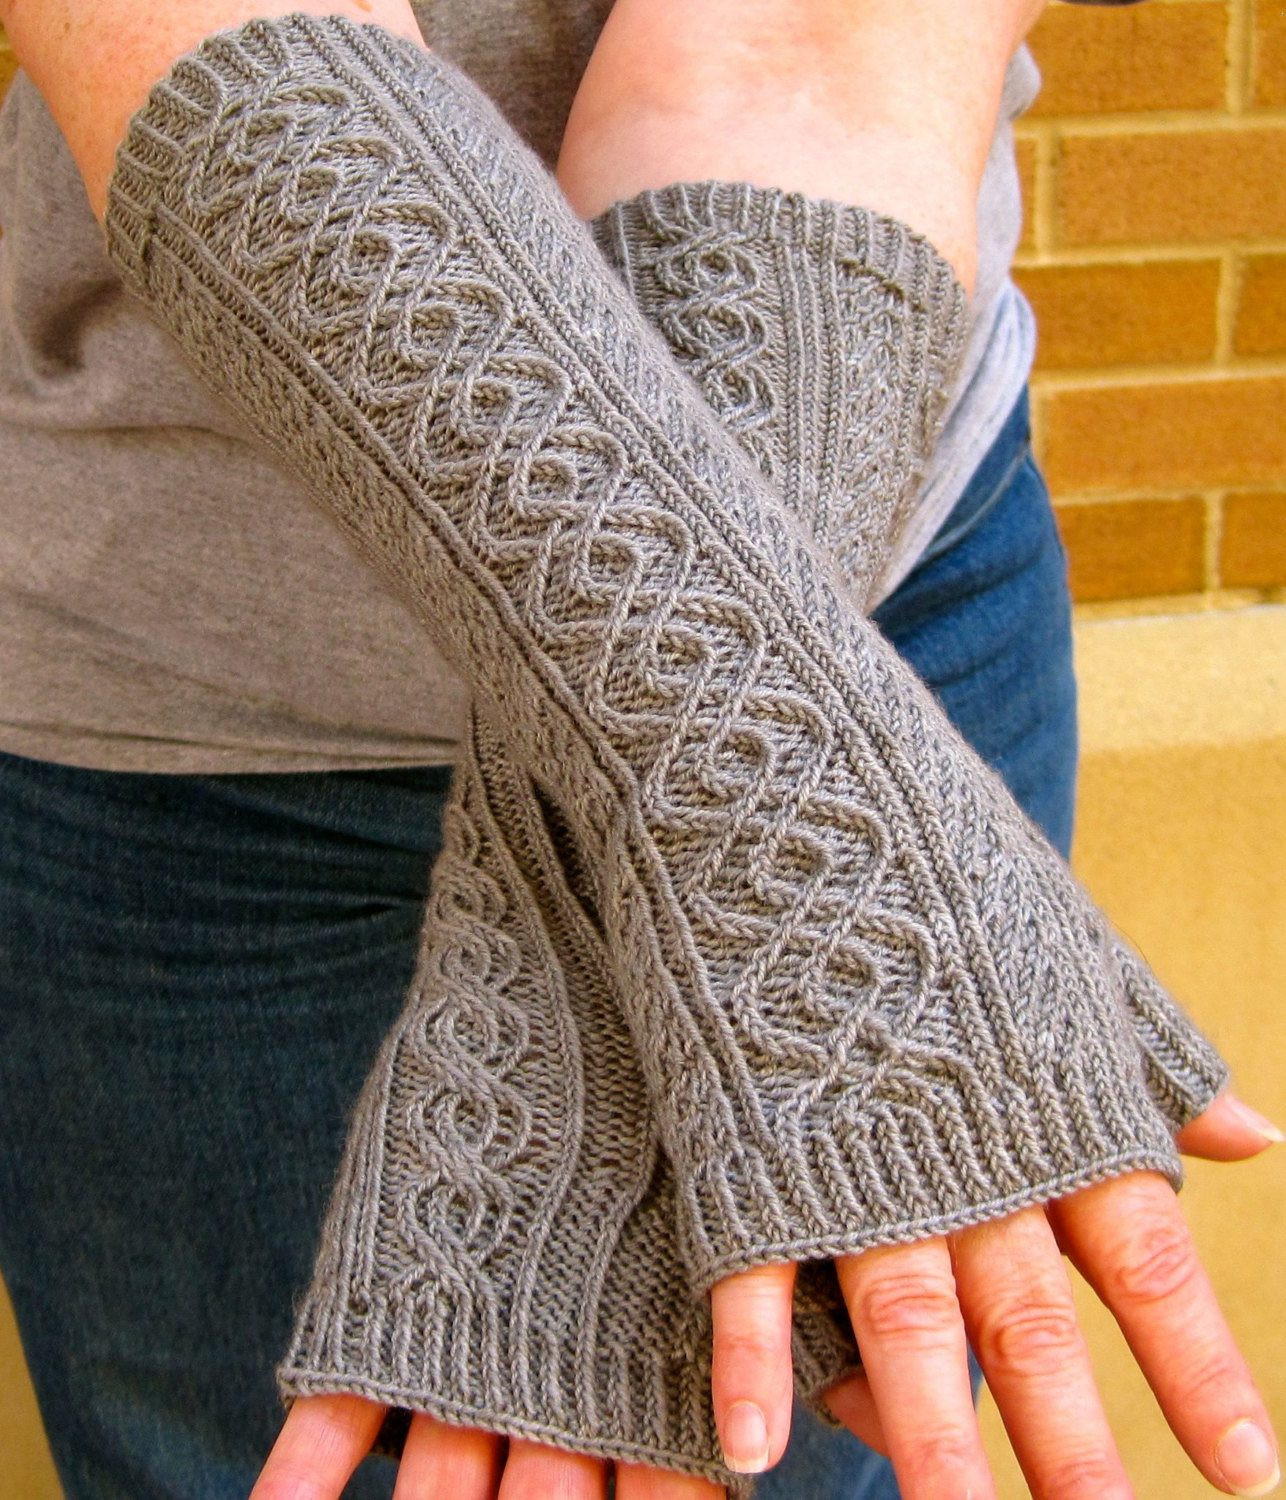 Unique Twisty Mitts Knitting Patterns Knitted Fingerless Mittens Of Luxury 48 Images Knitted Fingerless Mittens